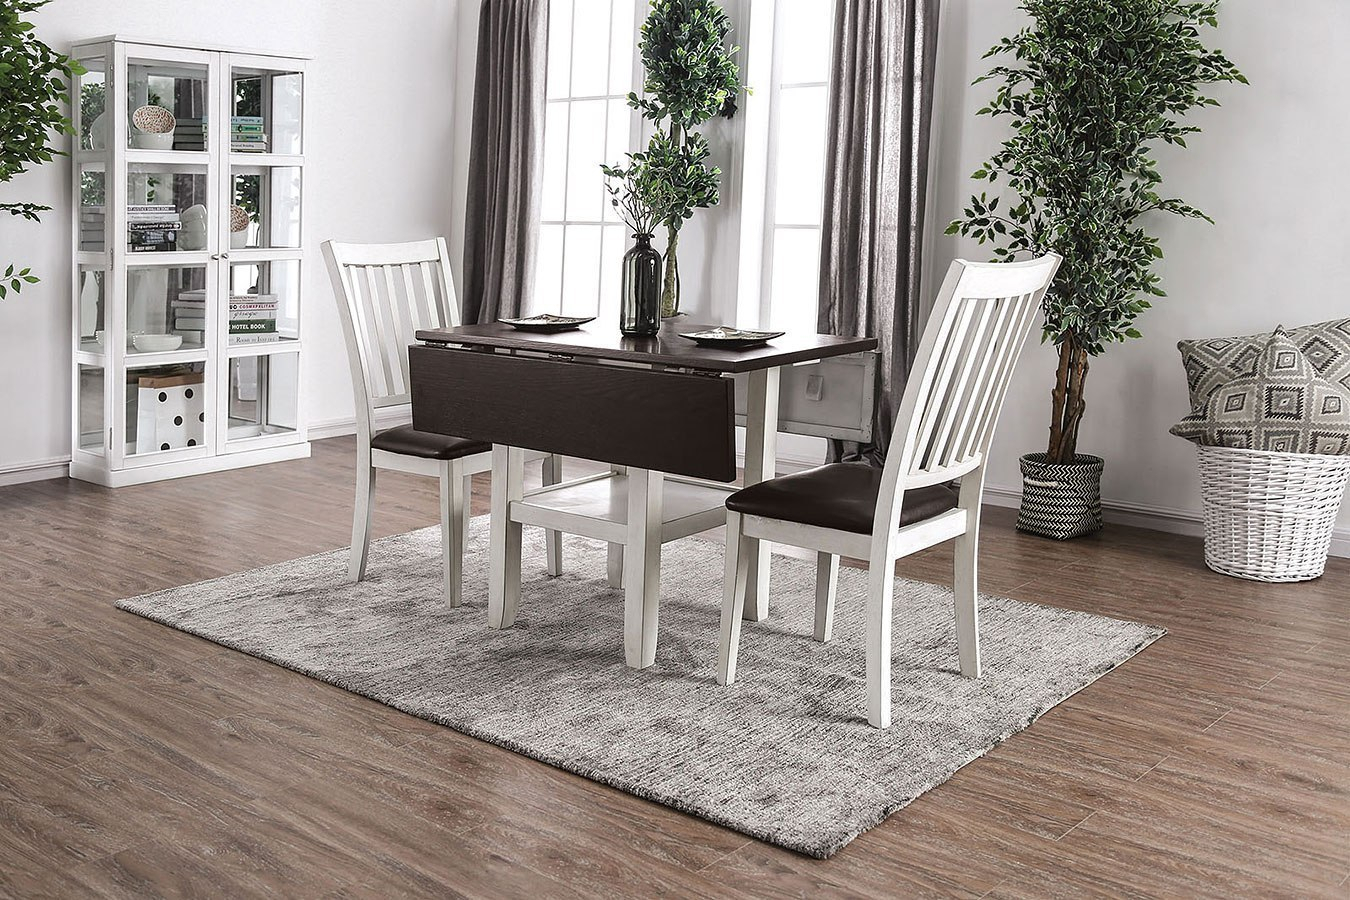 Rae Dining Table Product | Furniture Store In Houston | Best Intended For Current Rae Round Pedestal Dining Tables (Image 18 of 25)